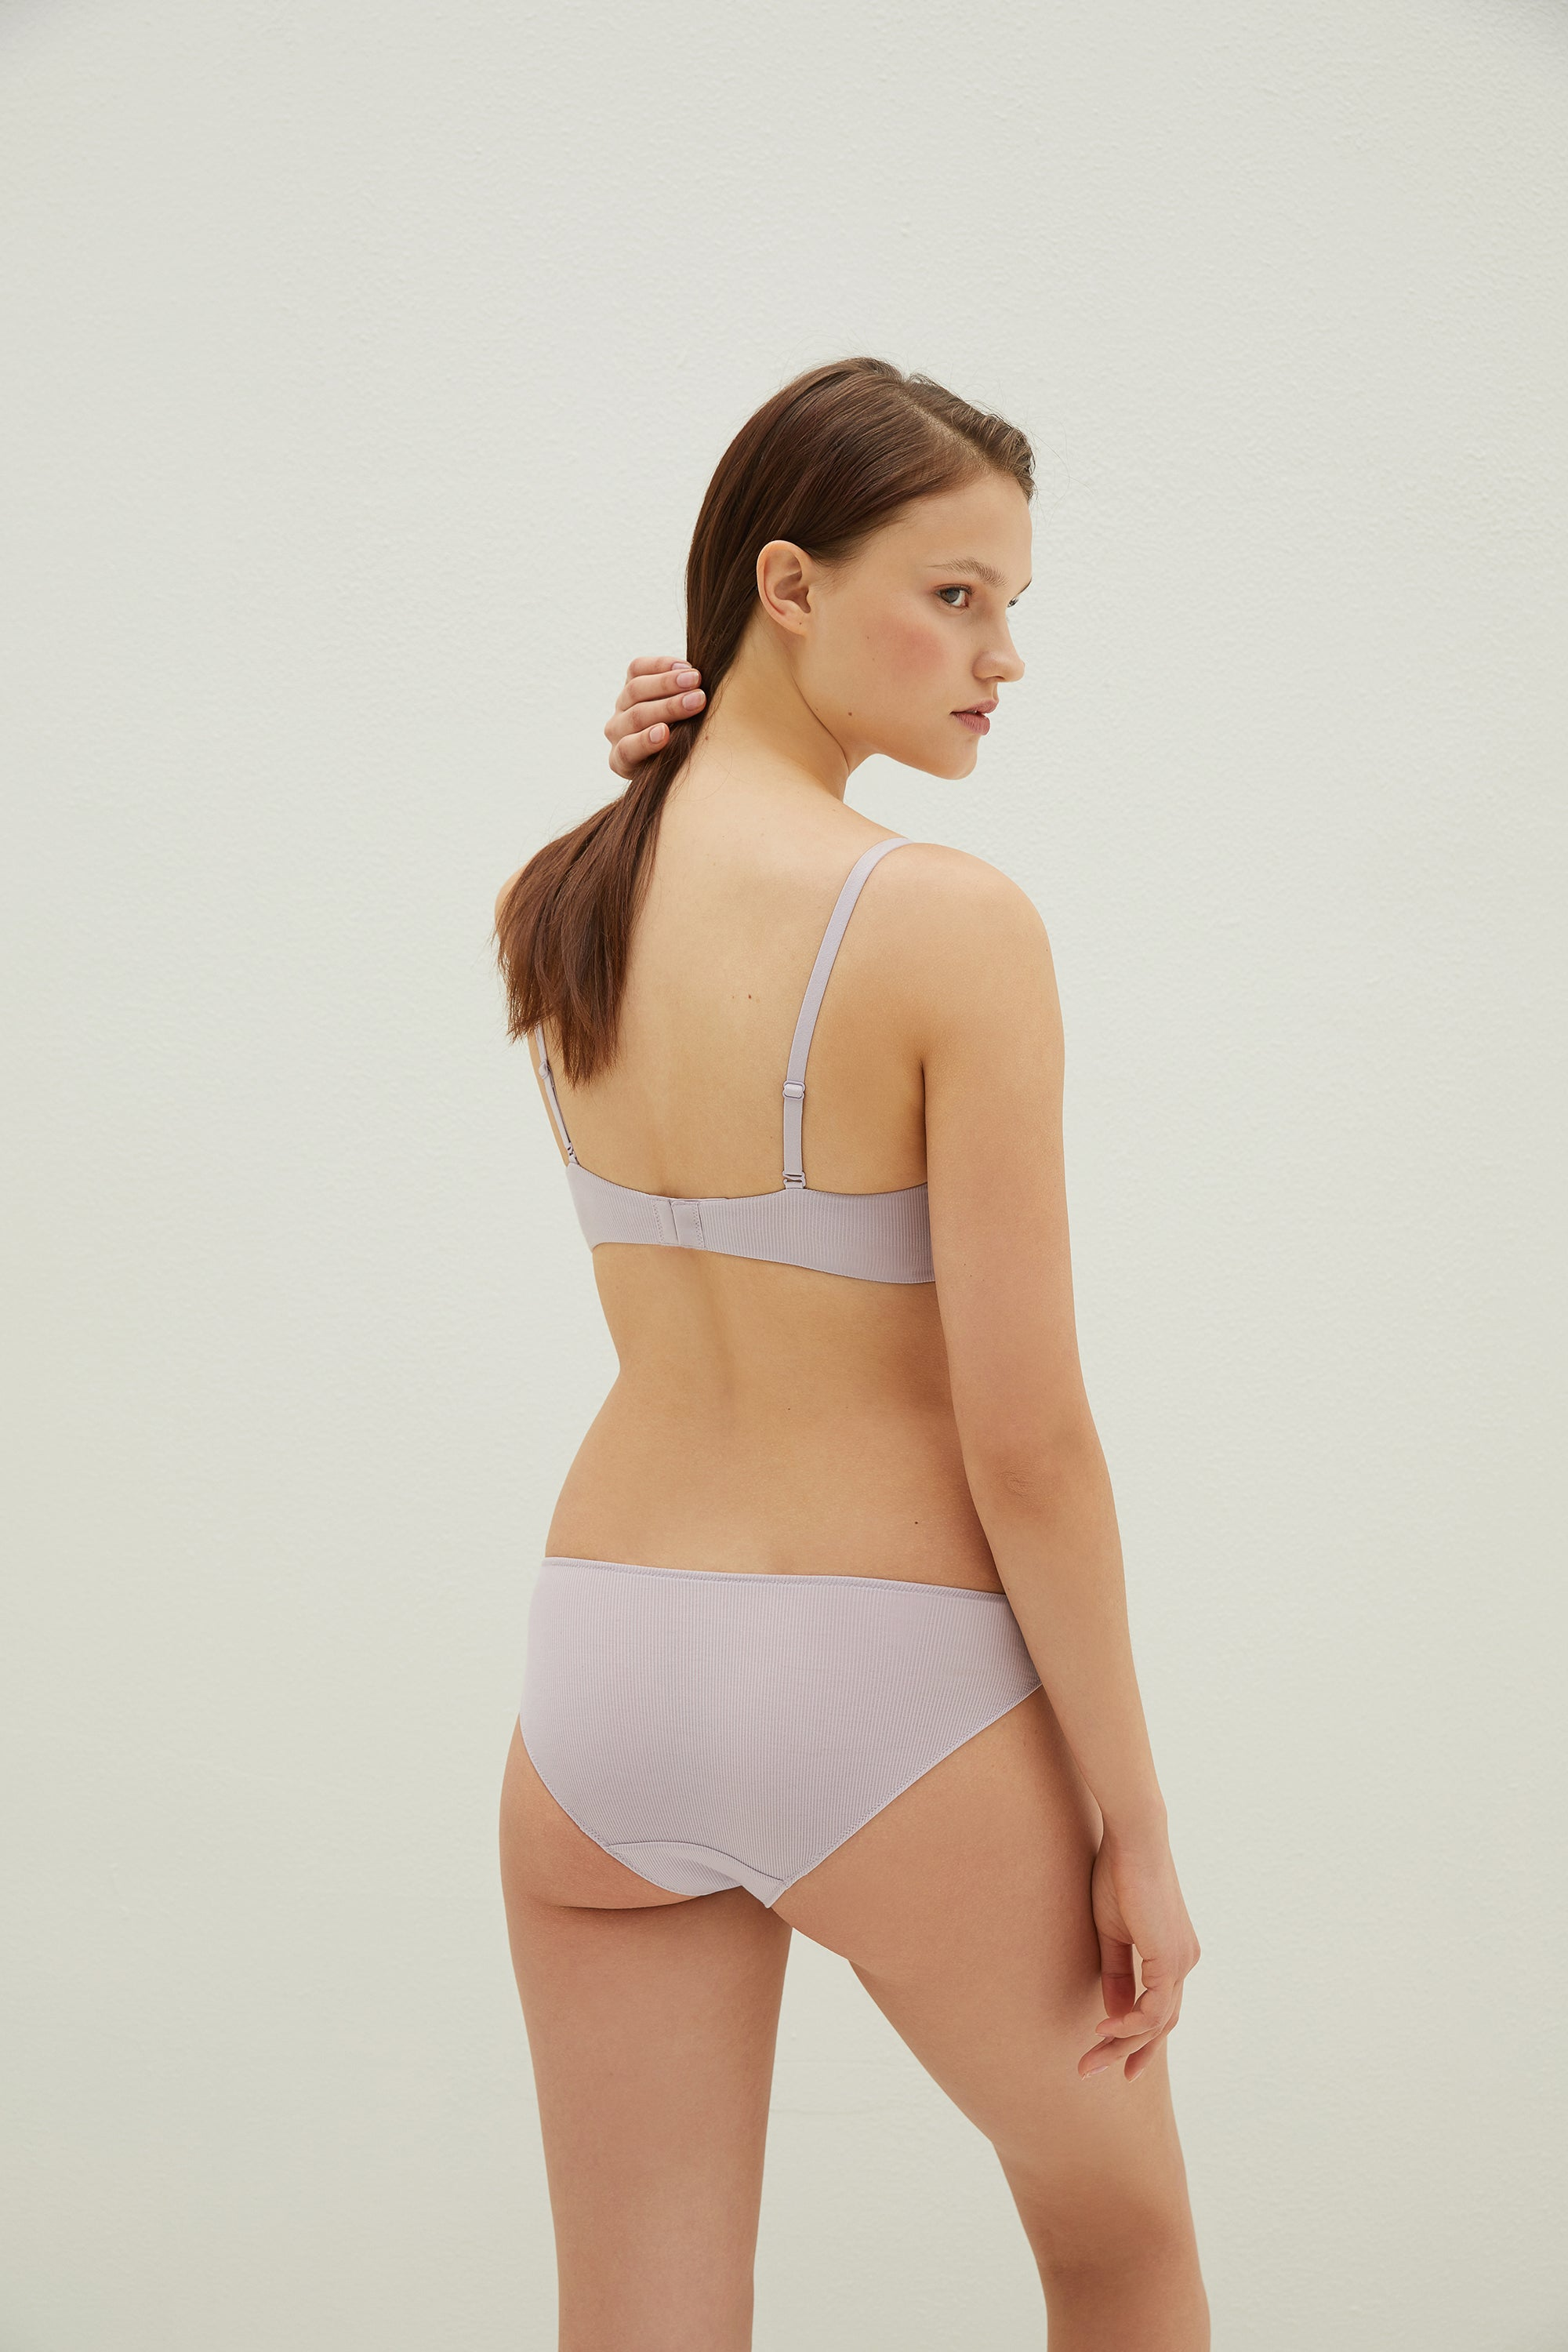 Model wearing NEIWAI's Pure Beauty V-shape TENCEL™ Low Waist Brief in Lavender.